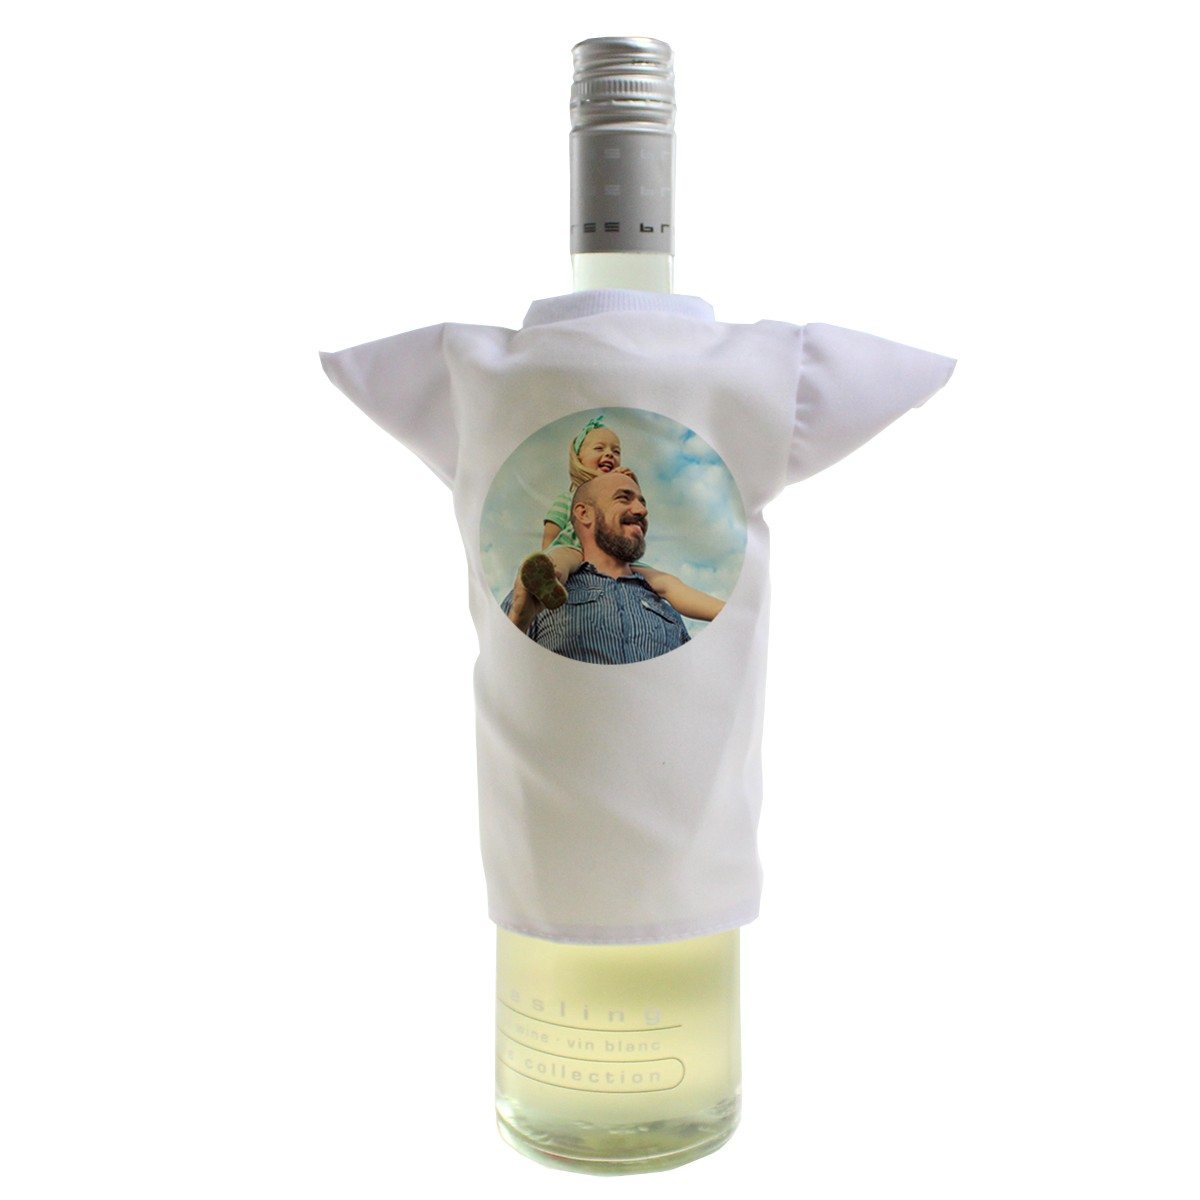 PERSONALIZED MINI BOTTLE T-SHIRT WITH PHOTO PRINT